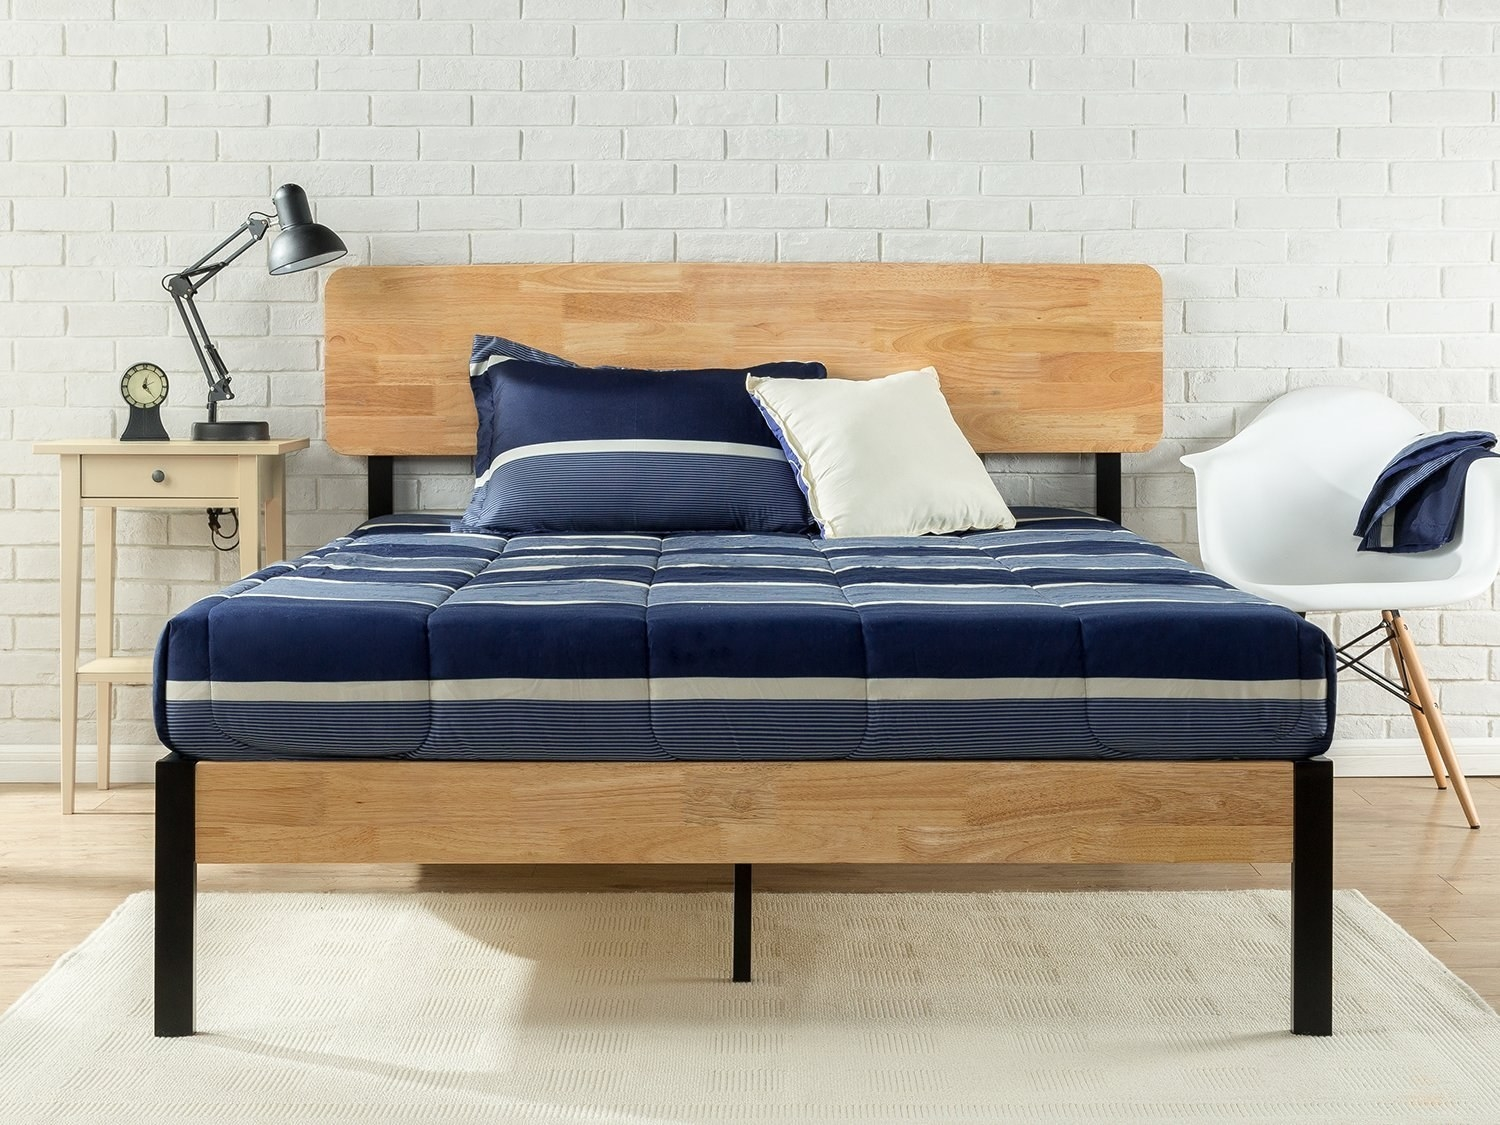 front view of the wood and metal bed frame